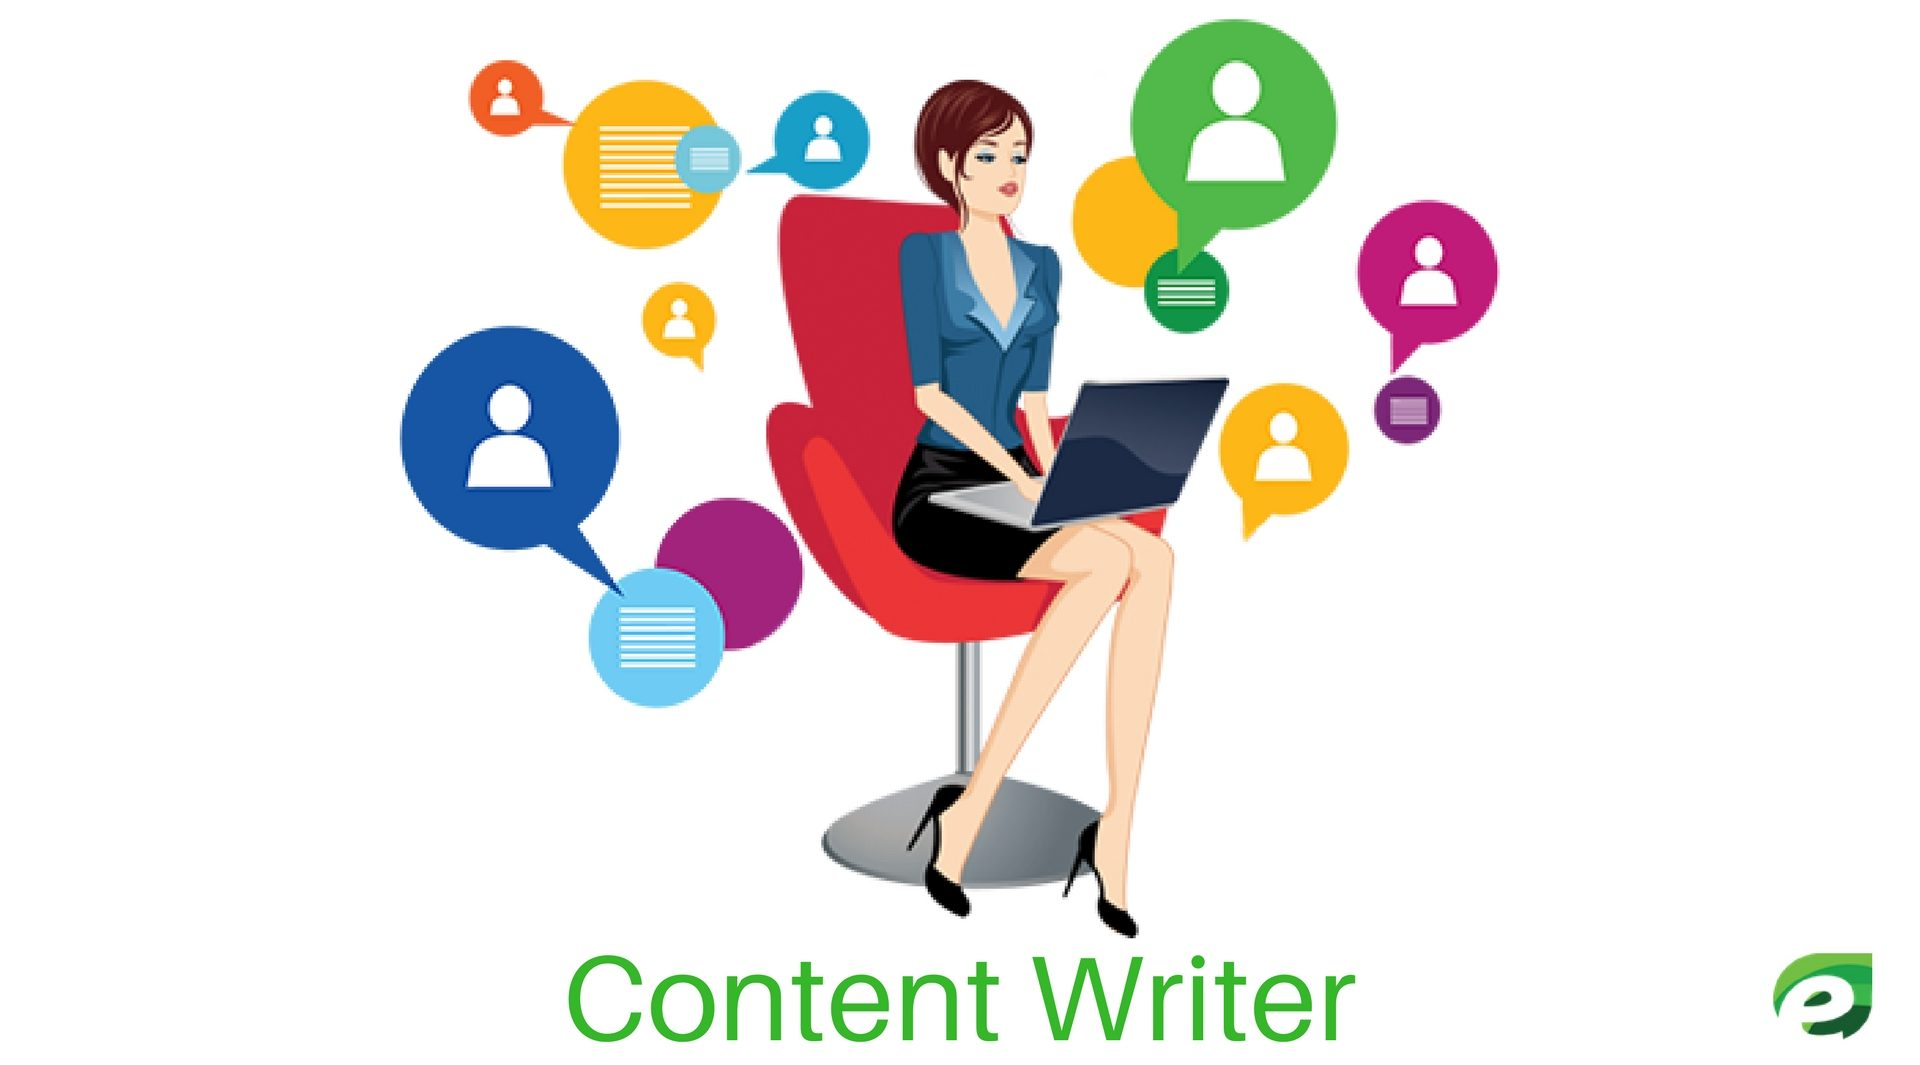 Content Writer - SEO Team